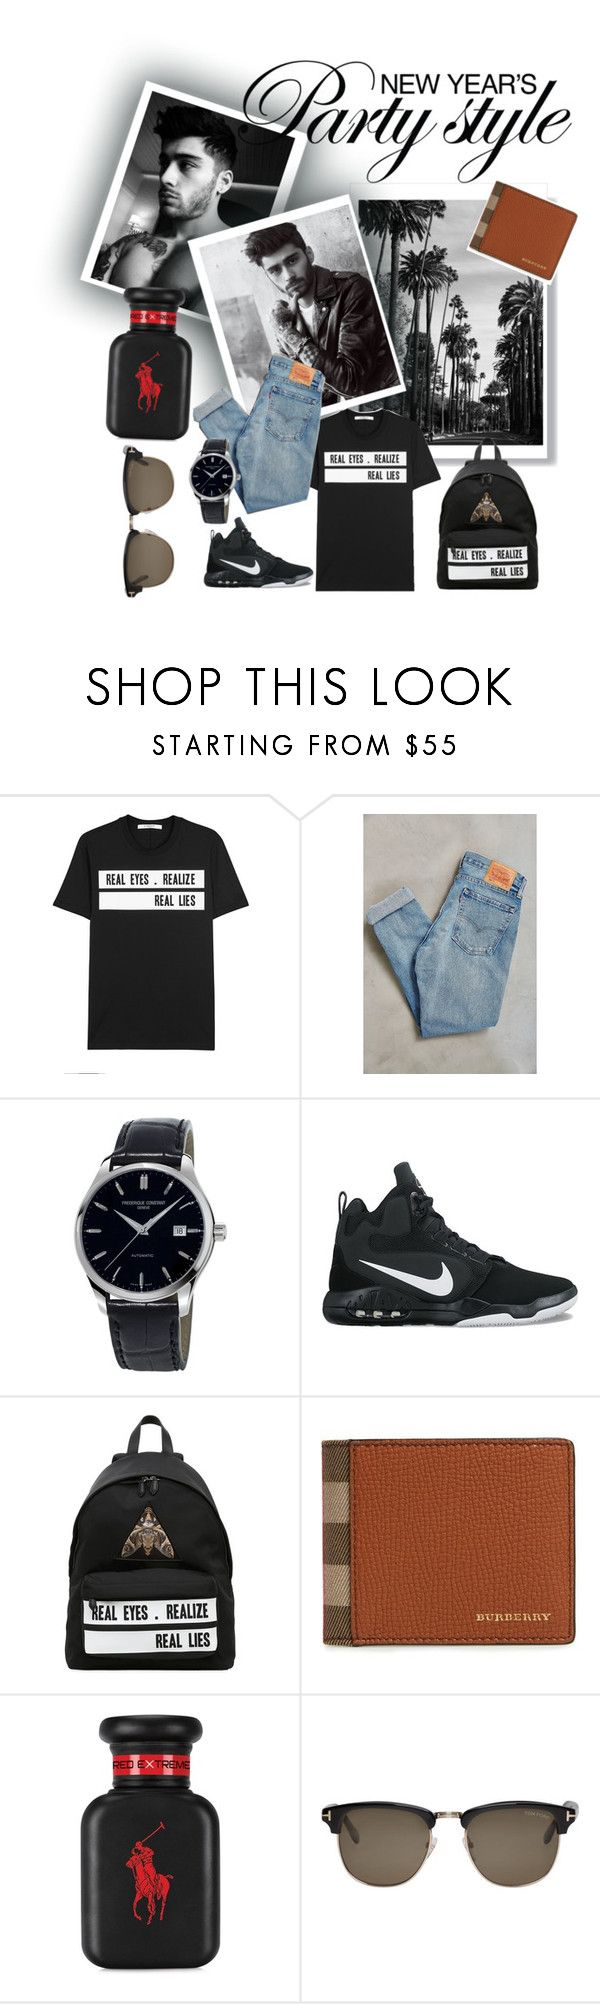 """Men's fashion #2"" by beautyqueendaniella ❤ liked on Polyvore featuring Givenchy, Levi's, Frédérique Constant, NIKE, Burberry, Ralph Lauren, Tom Ford, men's fashion and menswear"